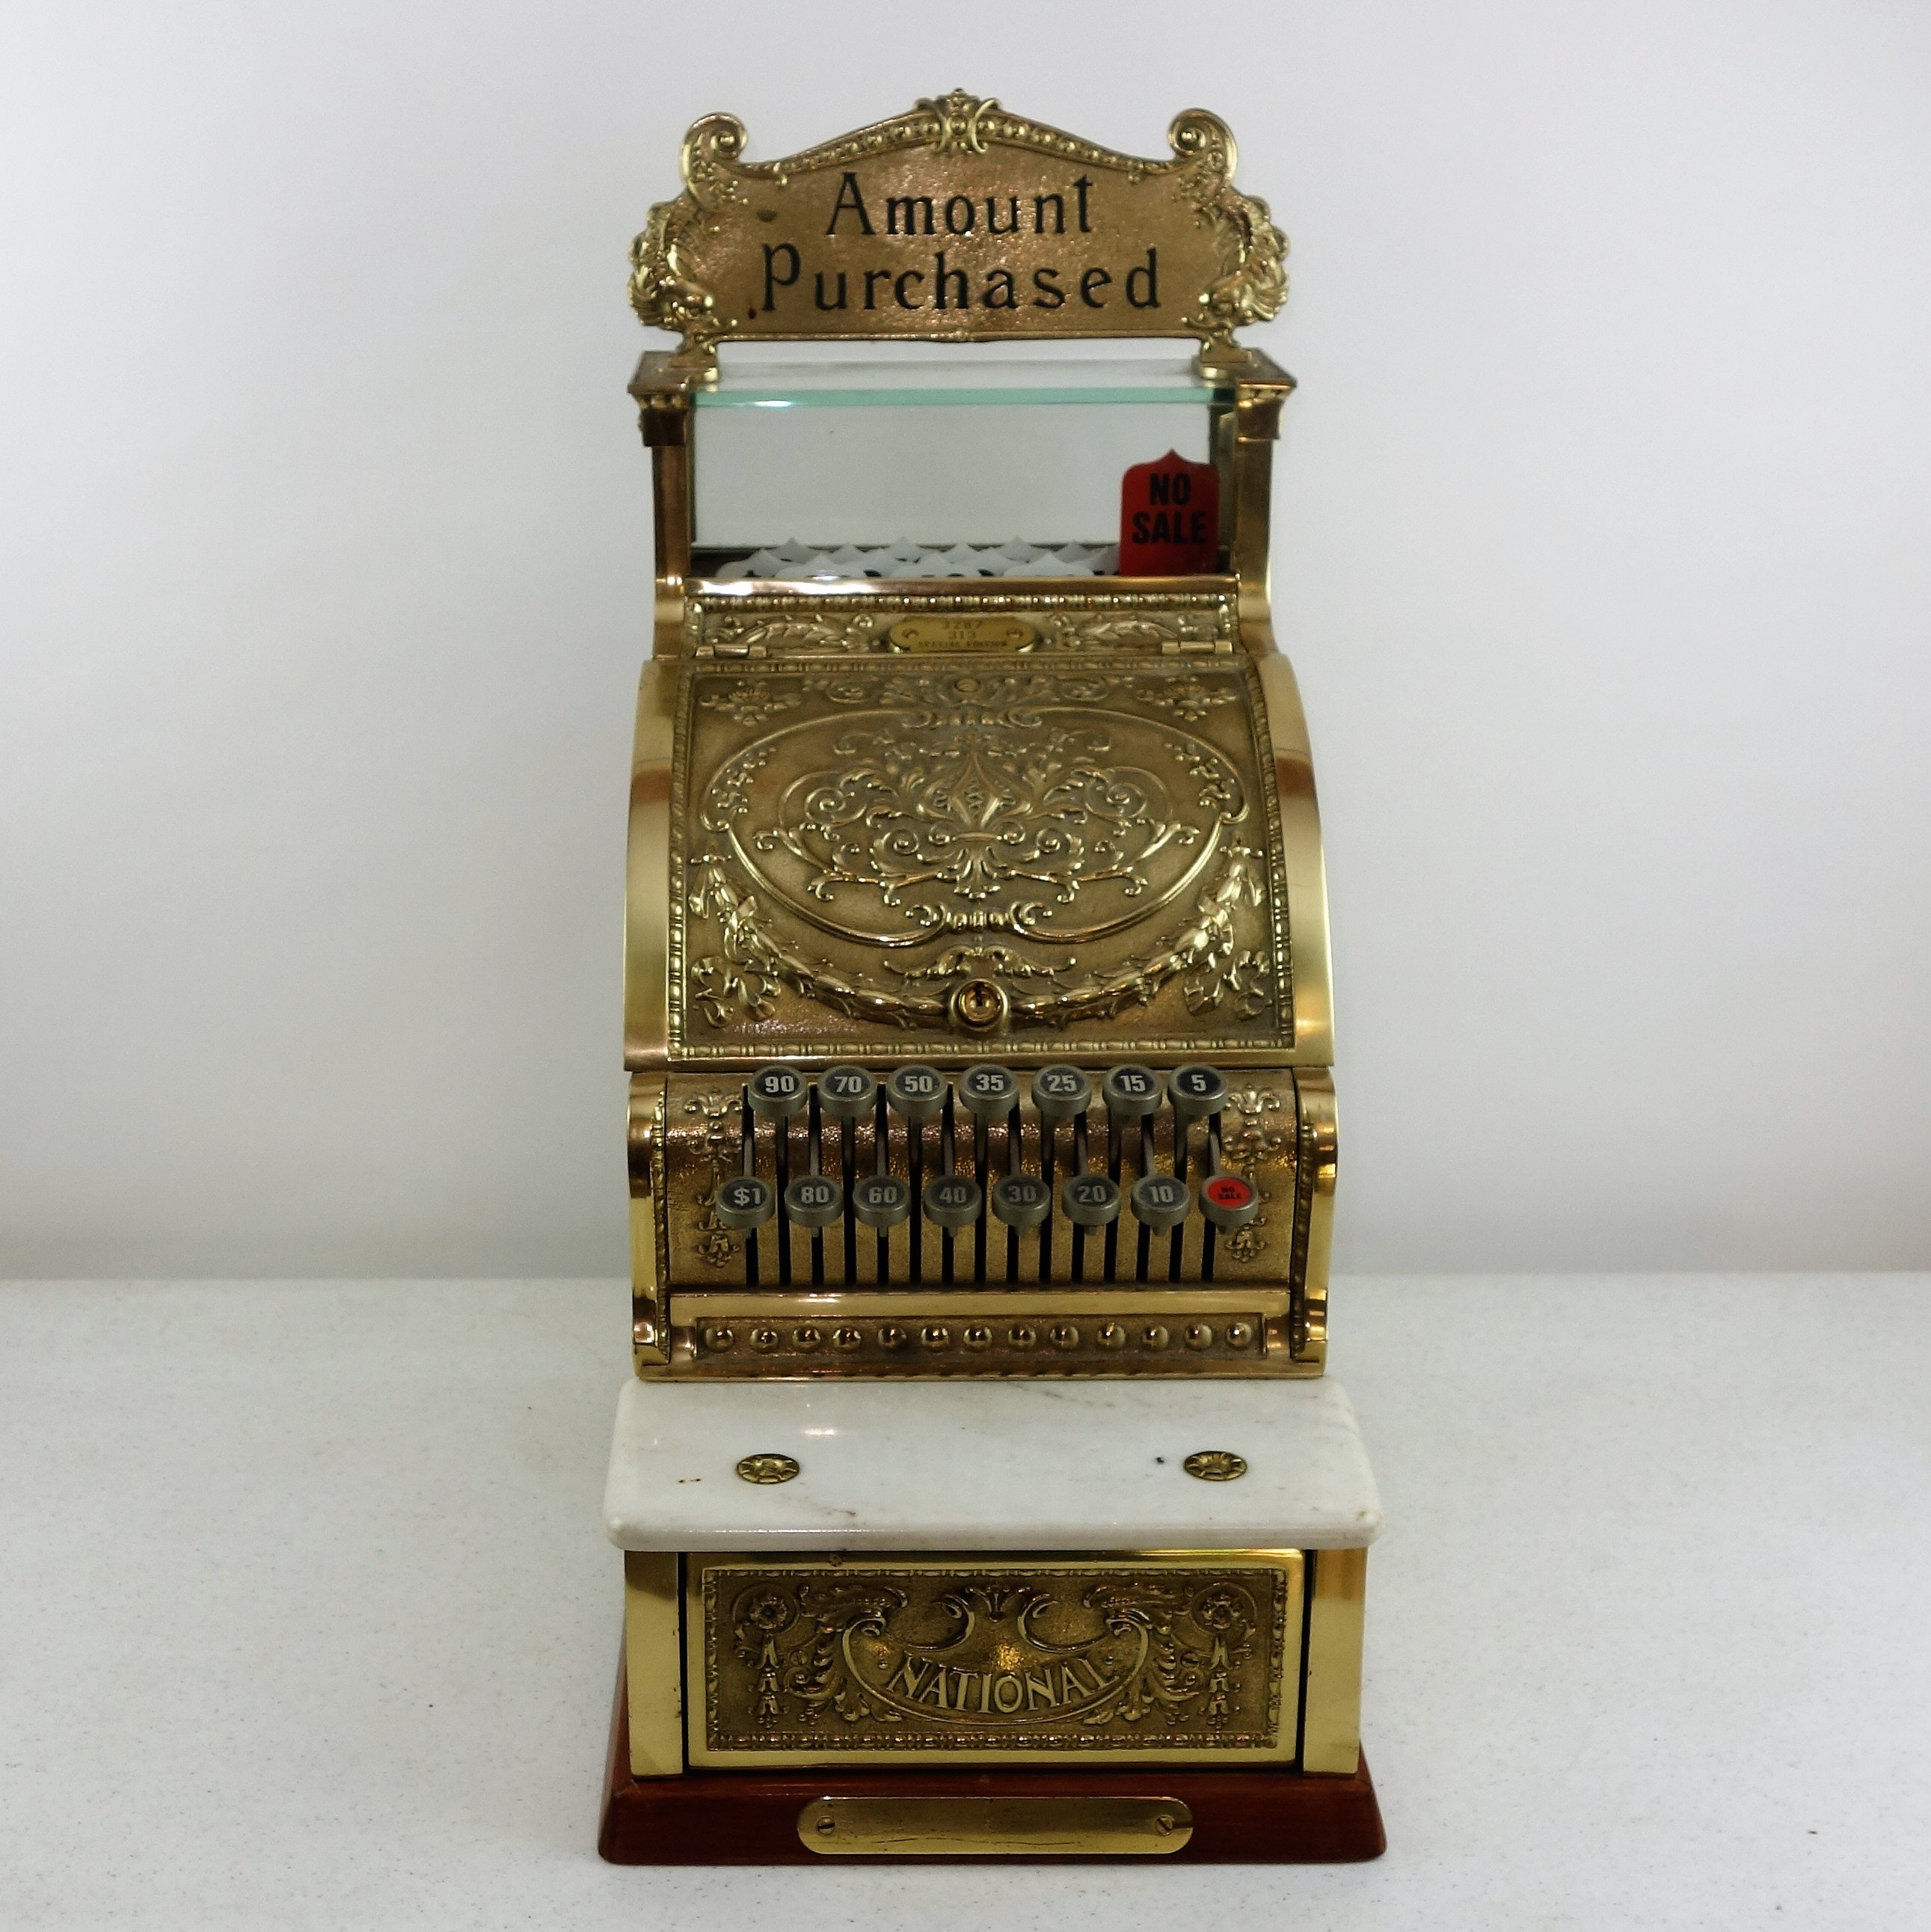 Vintage Special Edition National Cash Register